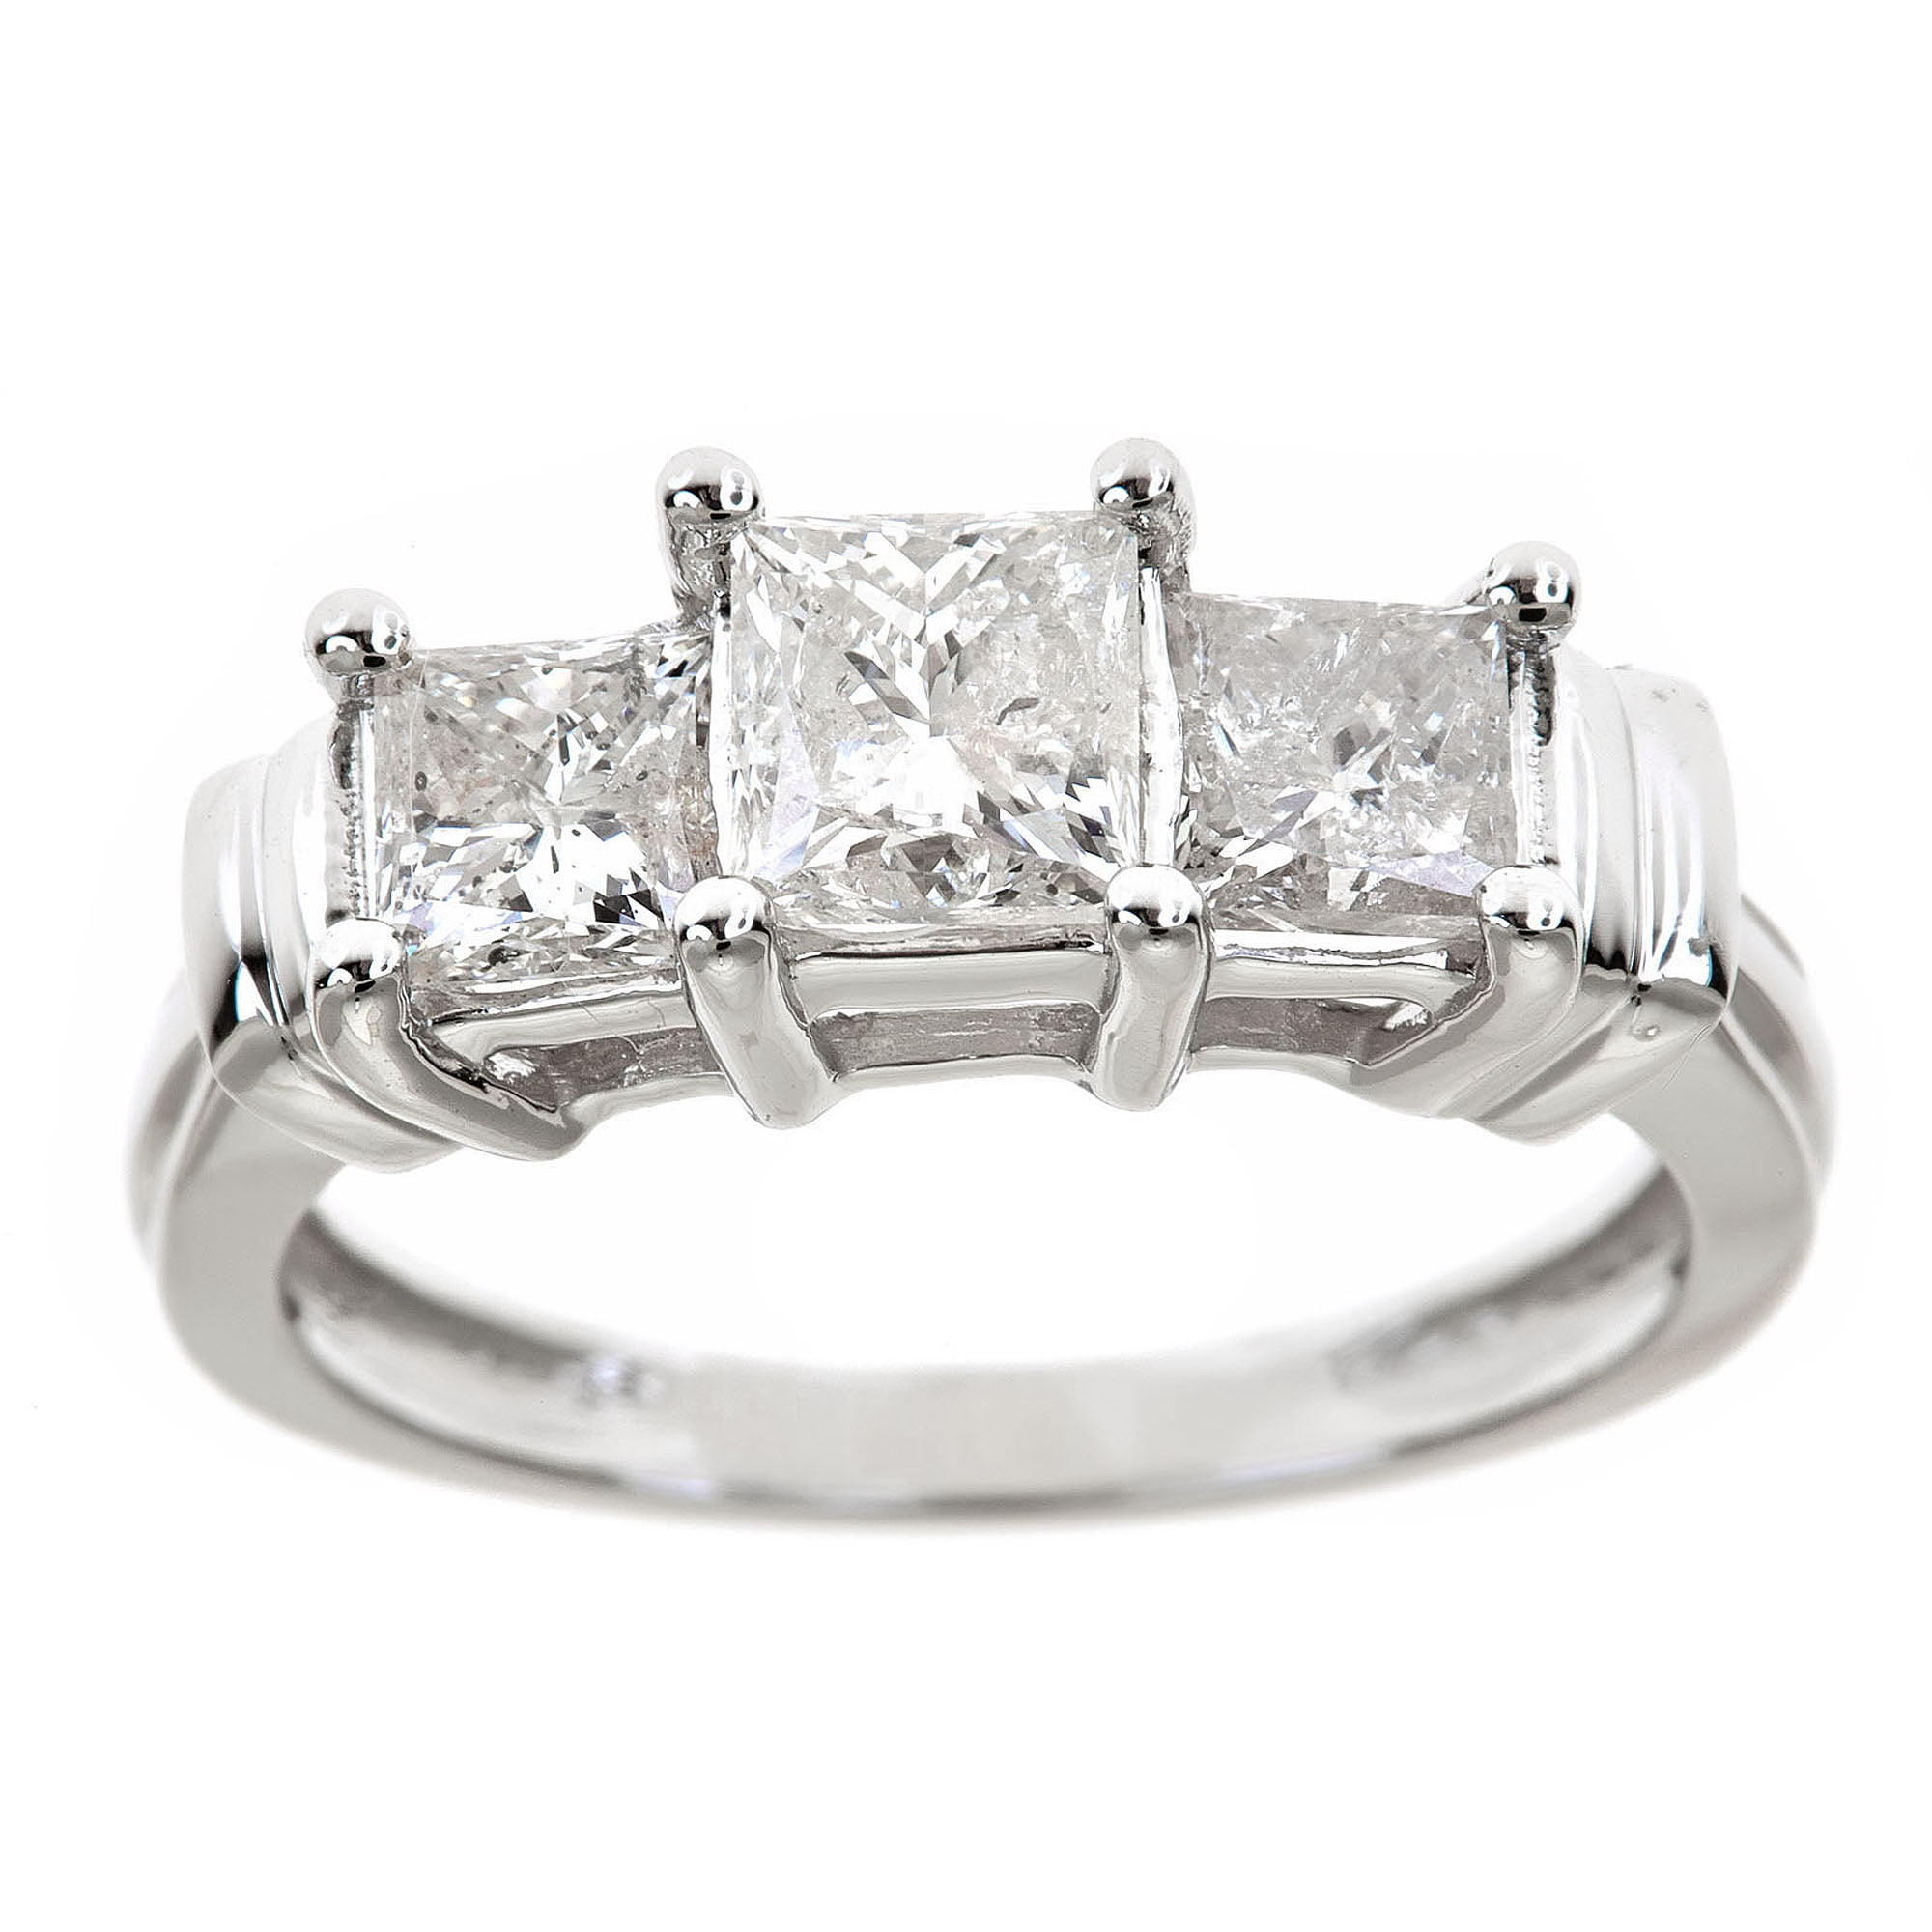 diamond white tacori product engagement of designs picture ring halo jewellery gold designer